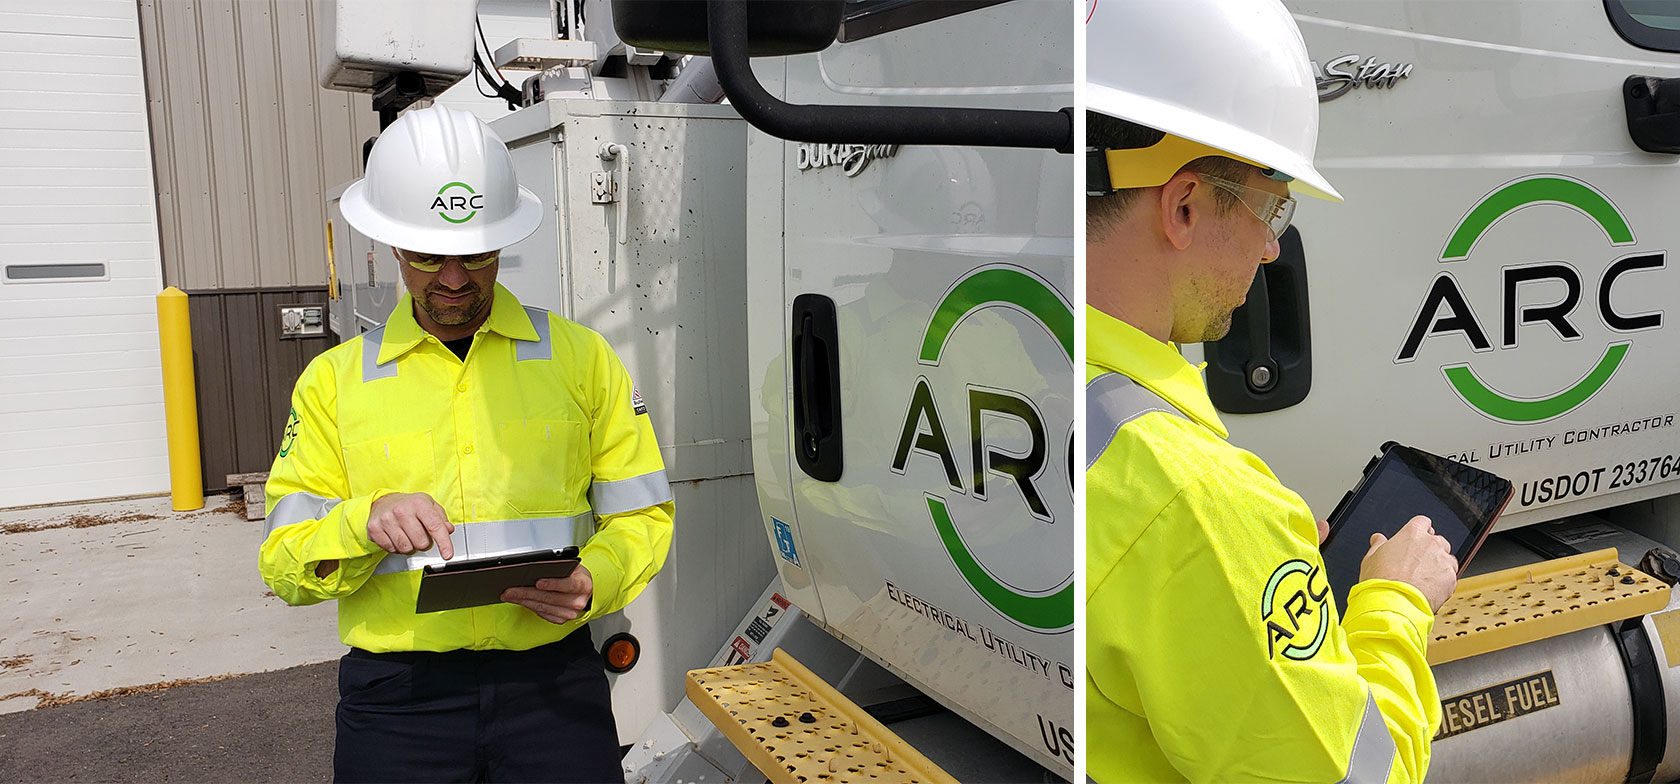 ARC American technician uses GoFormz mobile forms on his iPad while wearing a hard hat